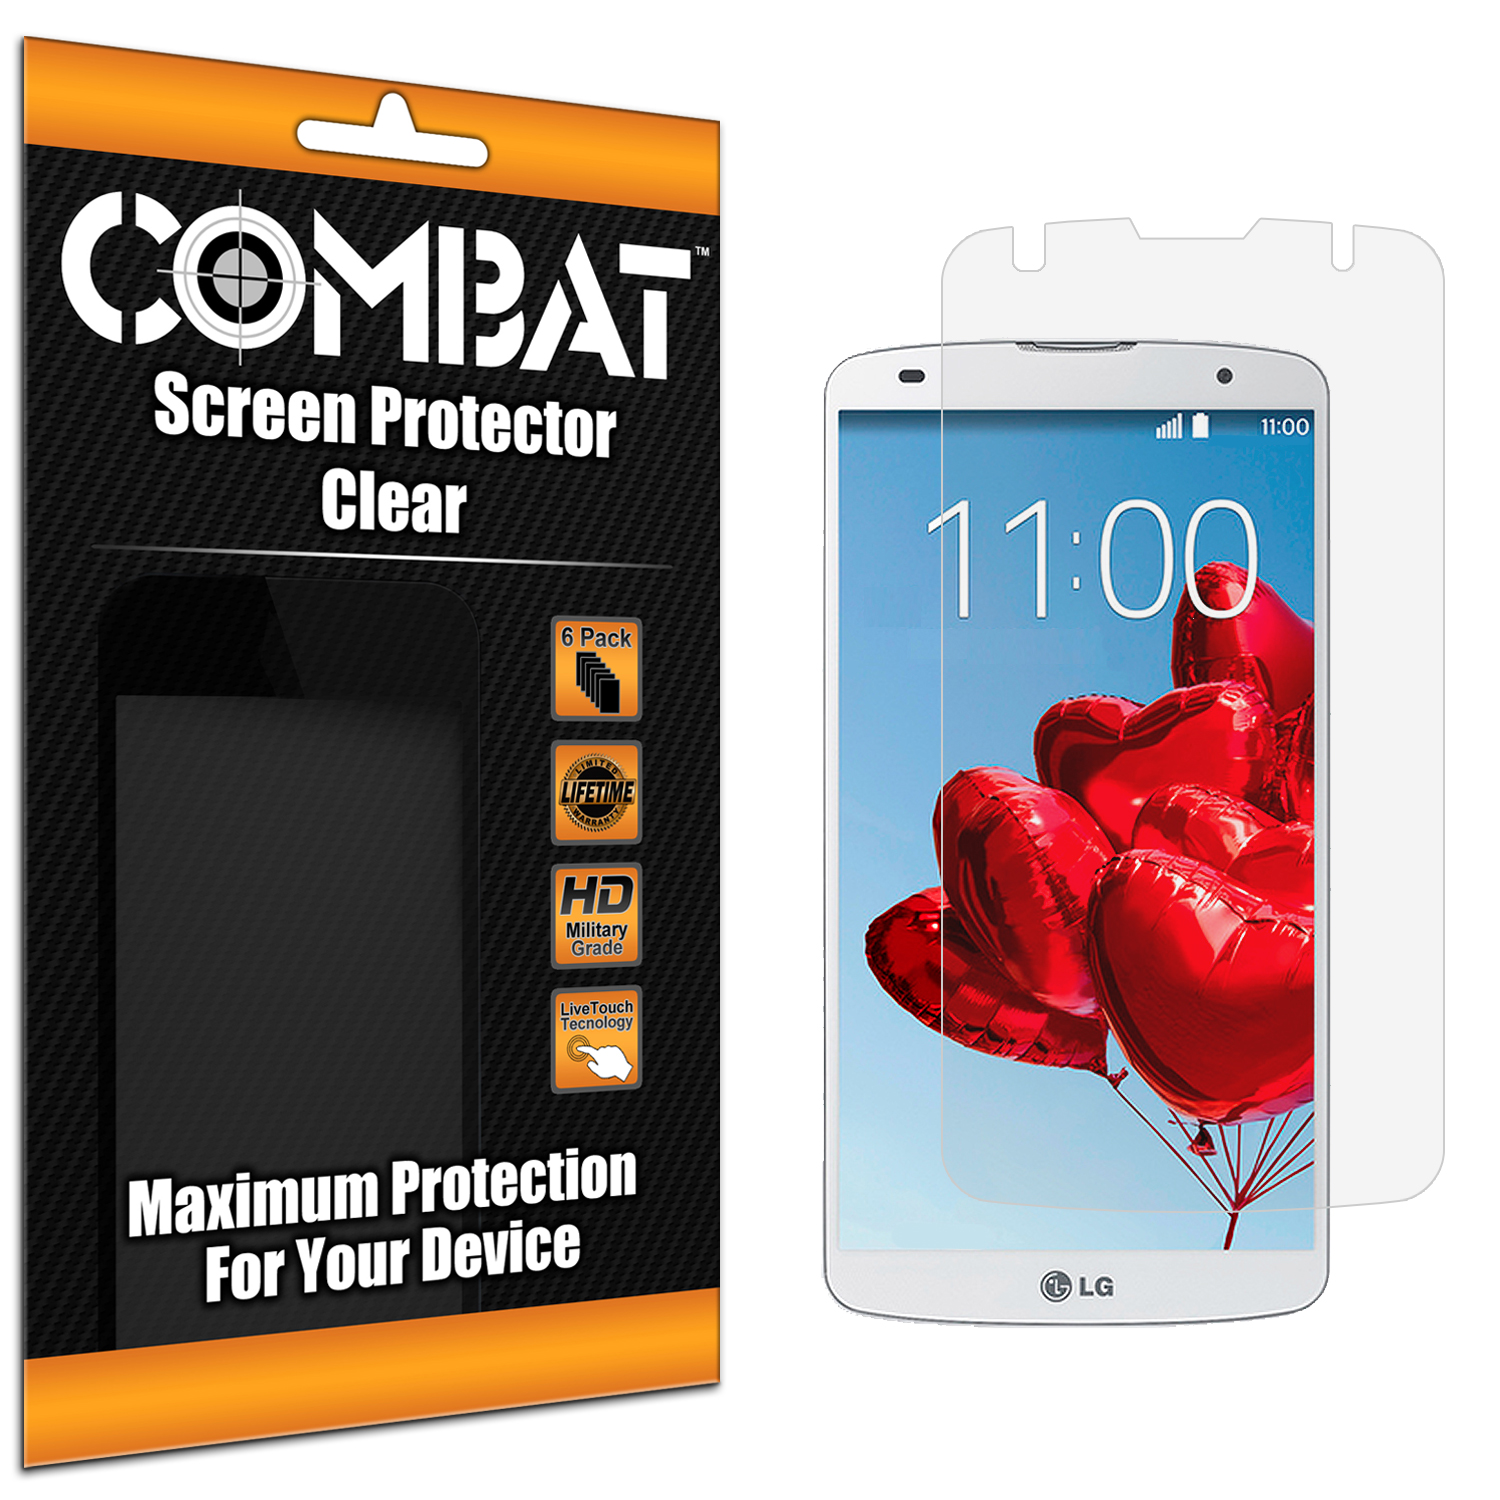 LG G Pro 2 Combat 6 Pack HD Clear Screen Protector